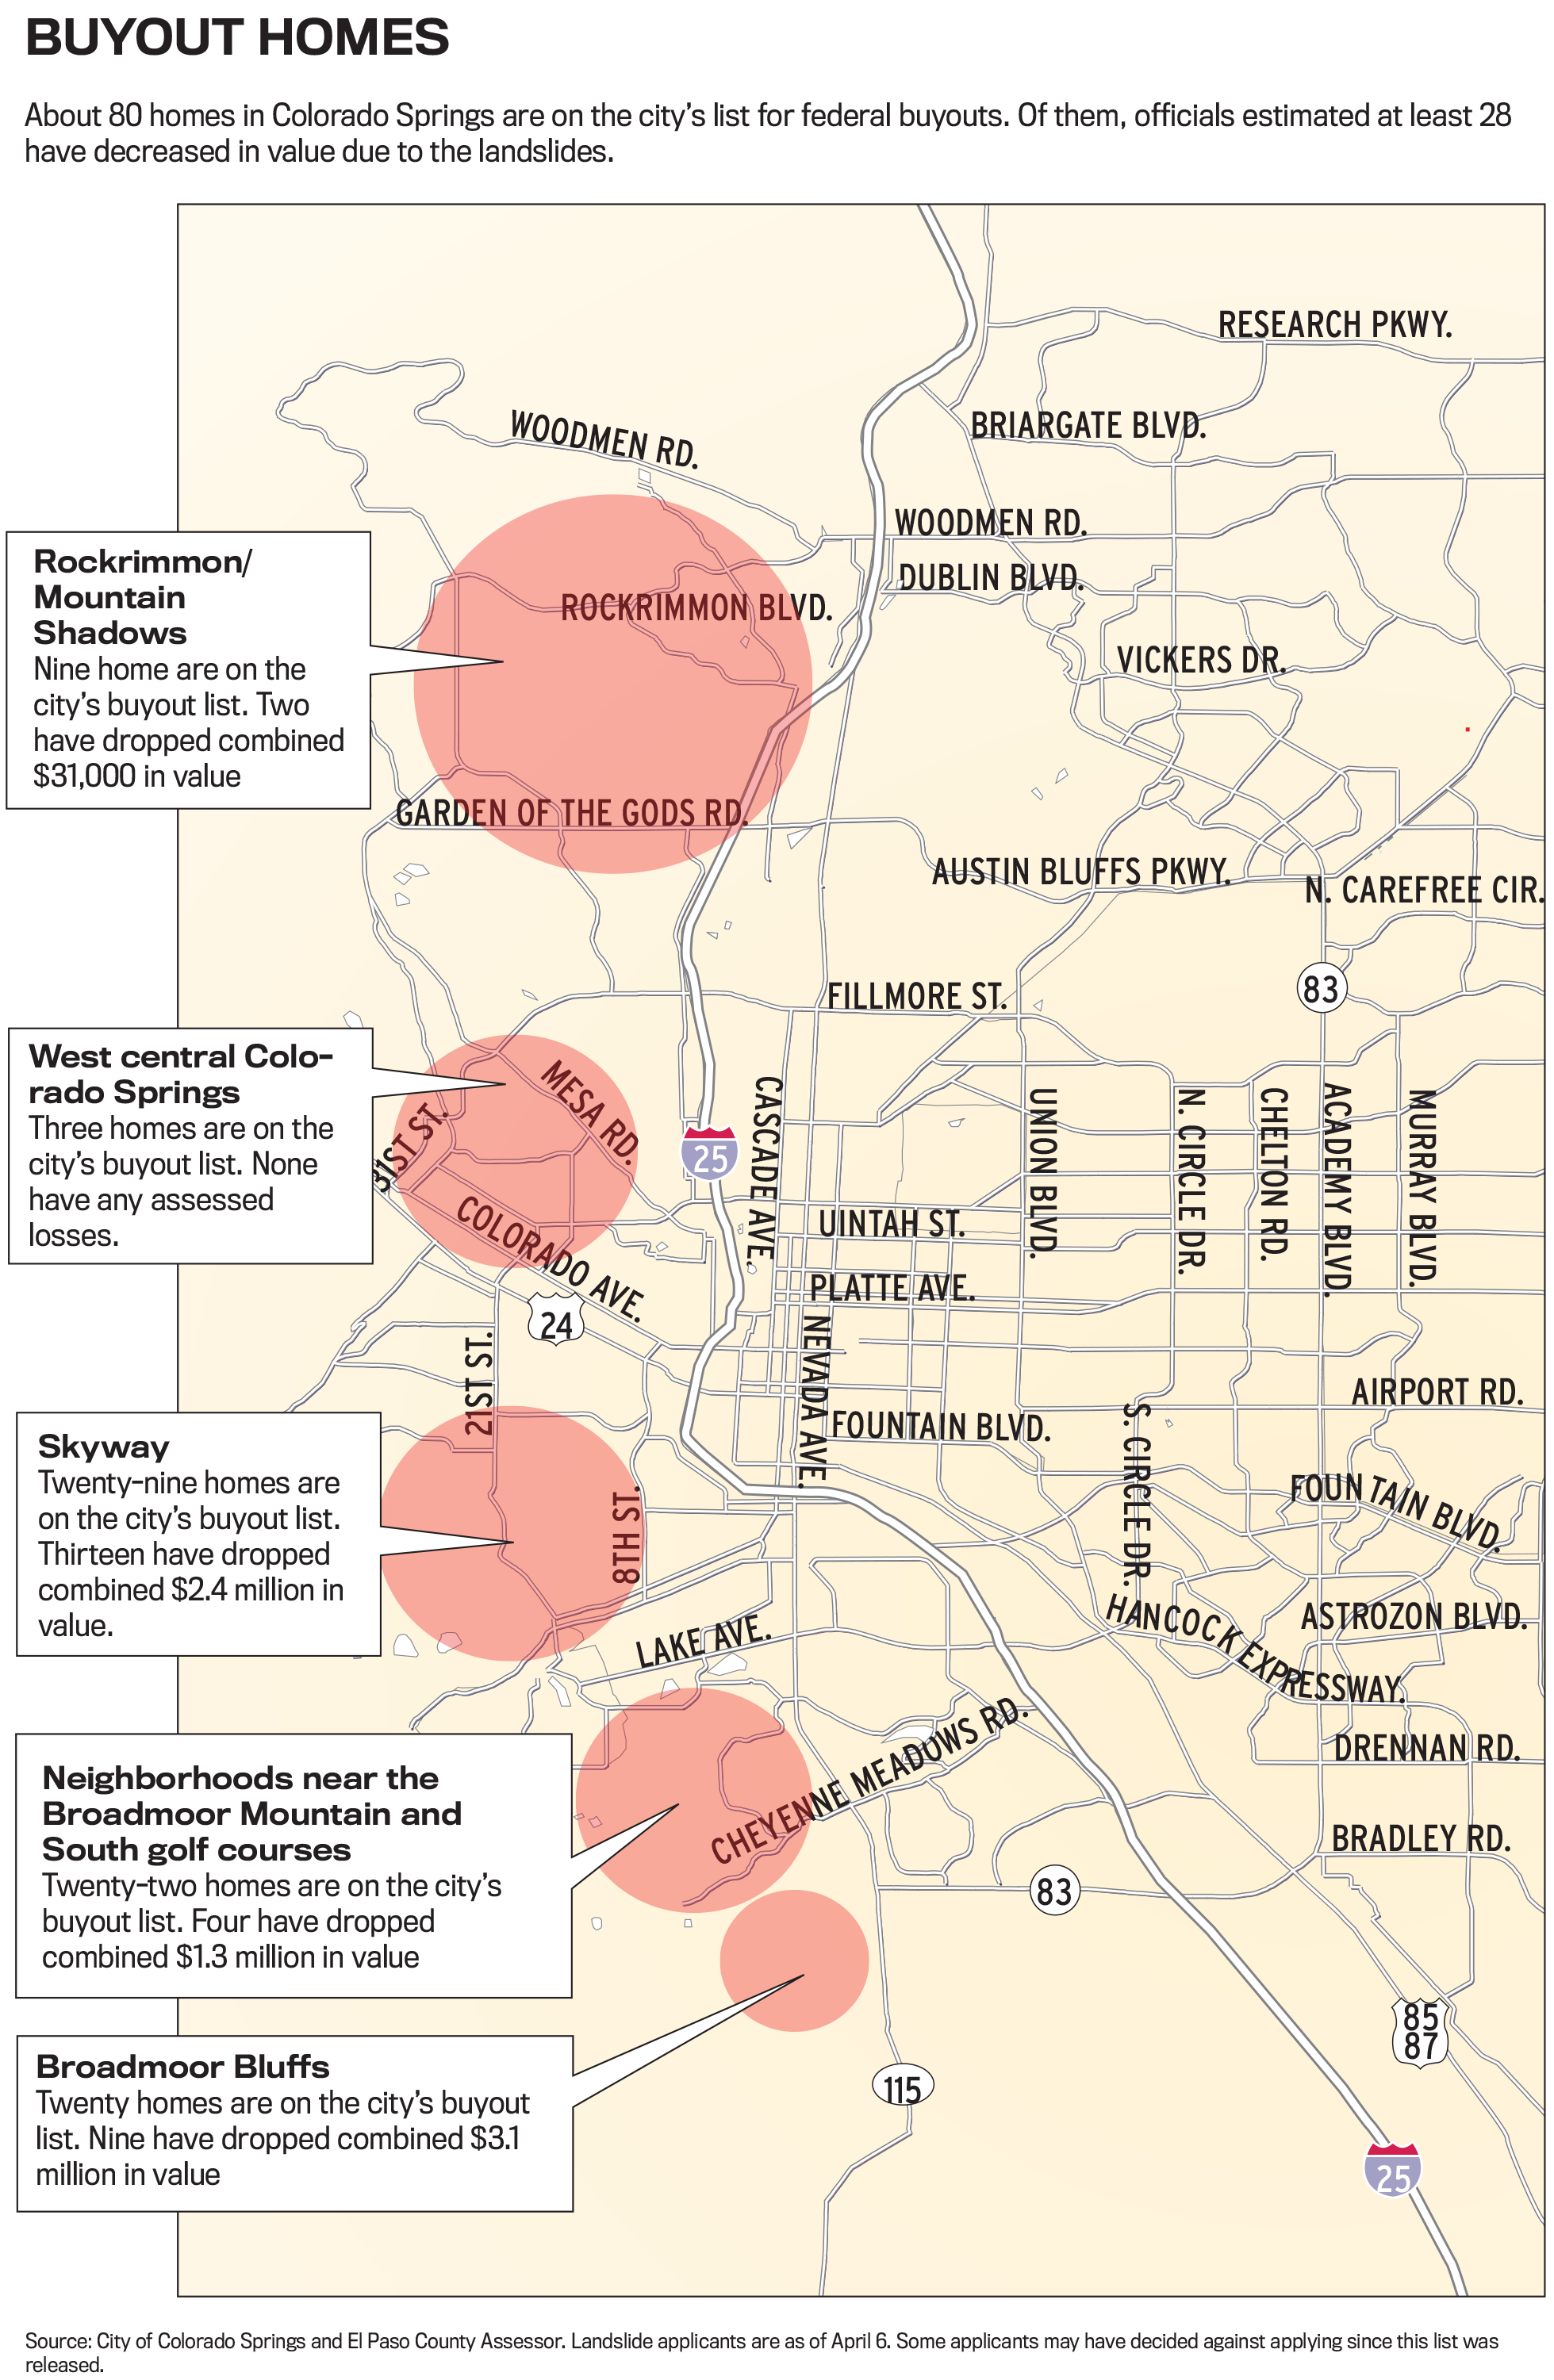 7 things colorado springs residents need to know about landslides